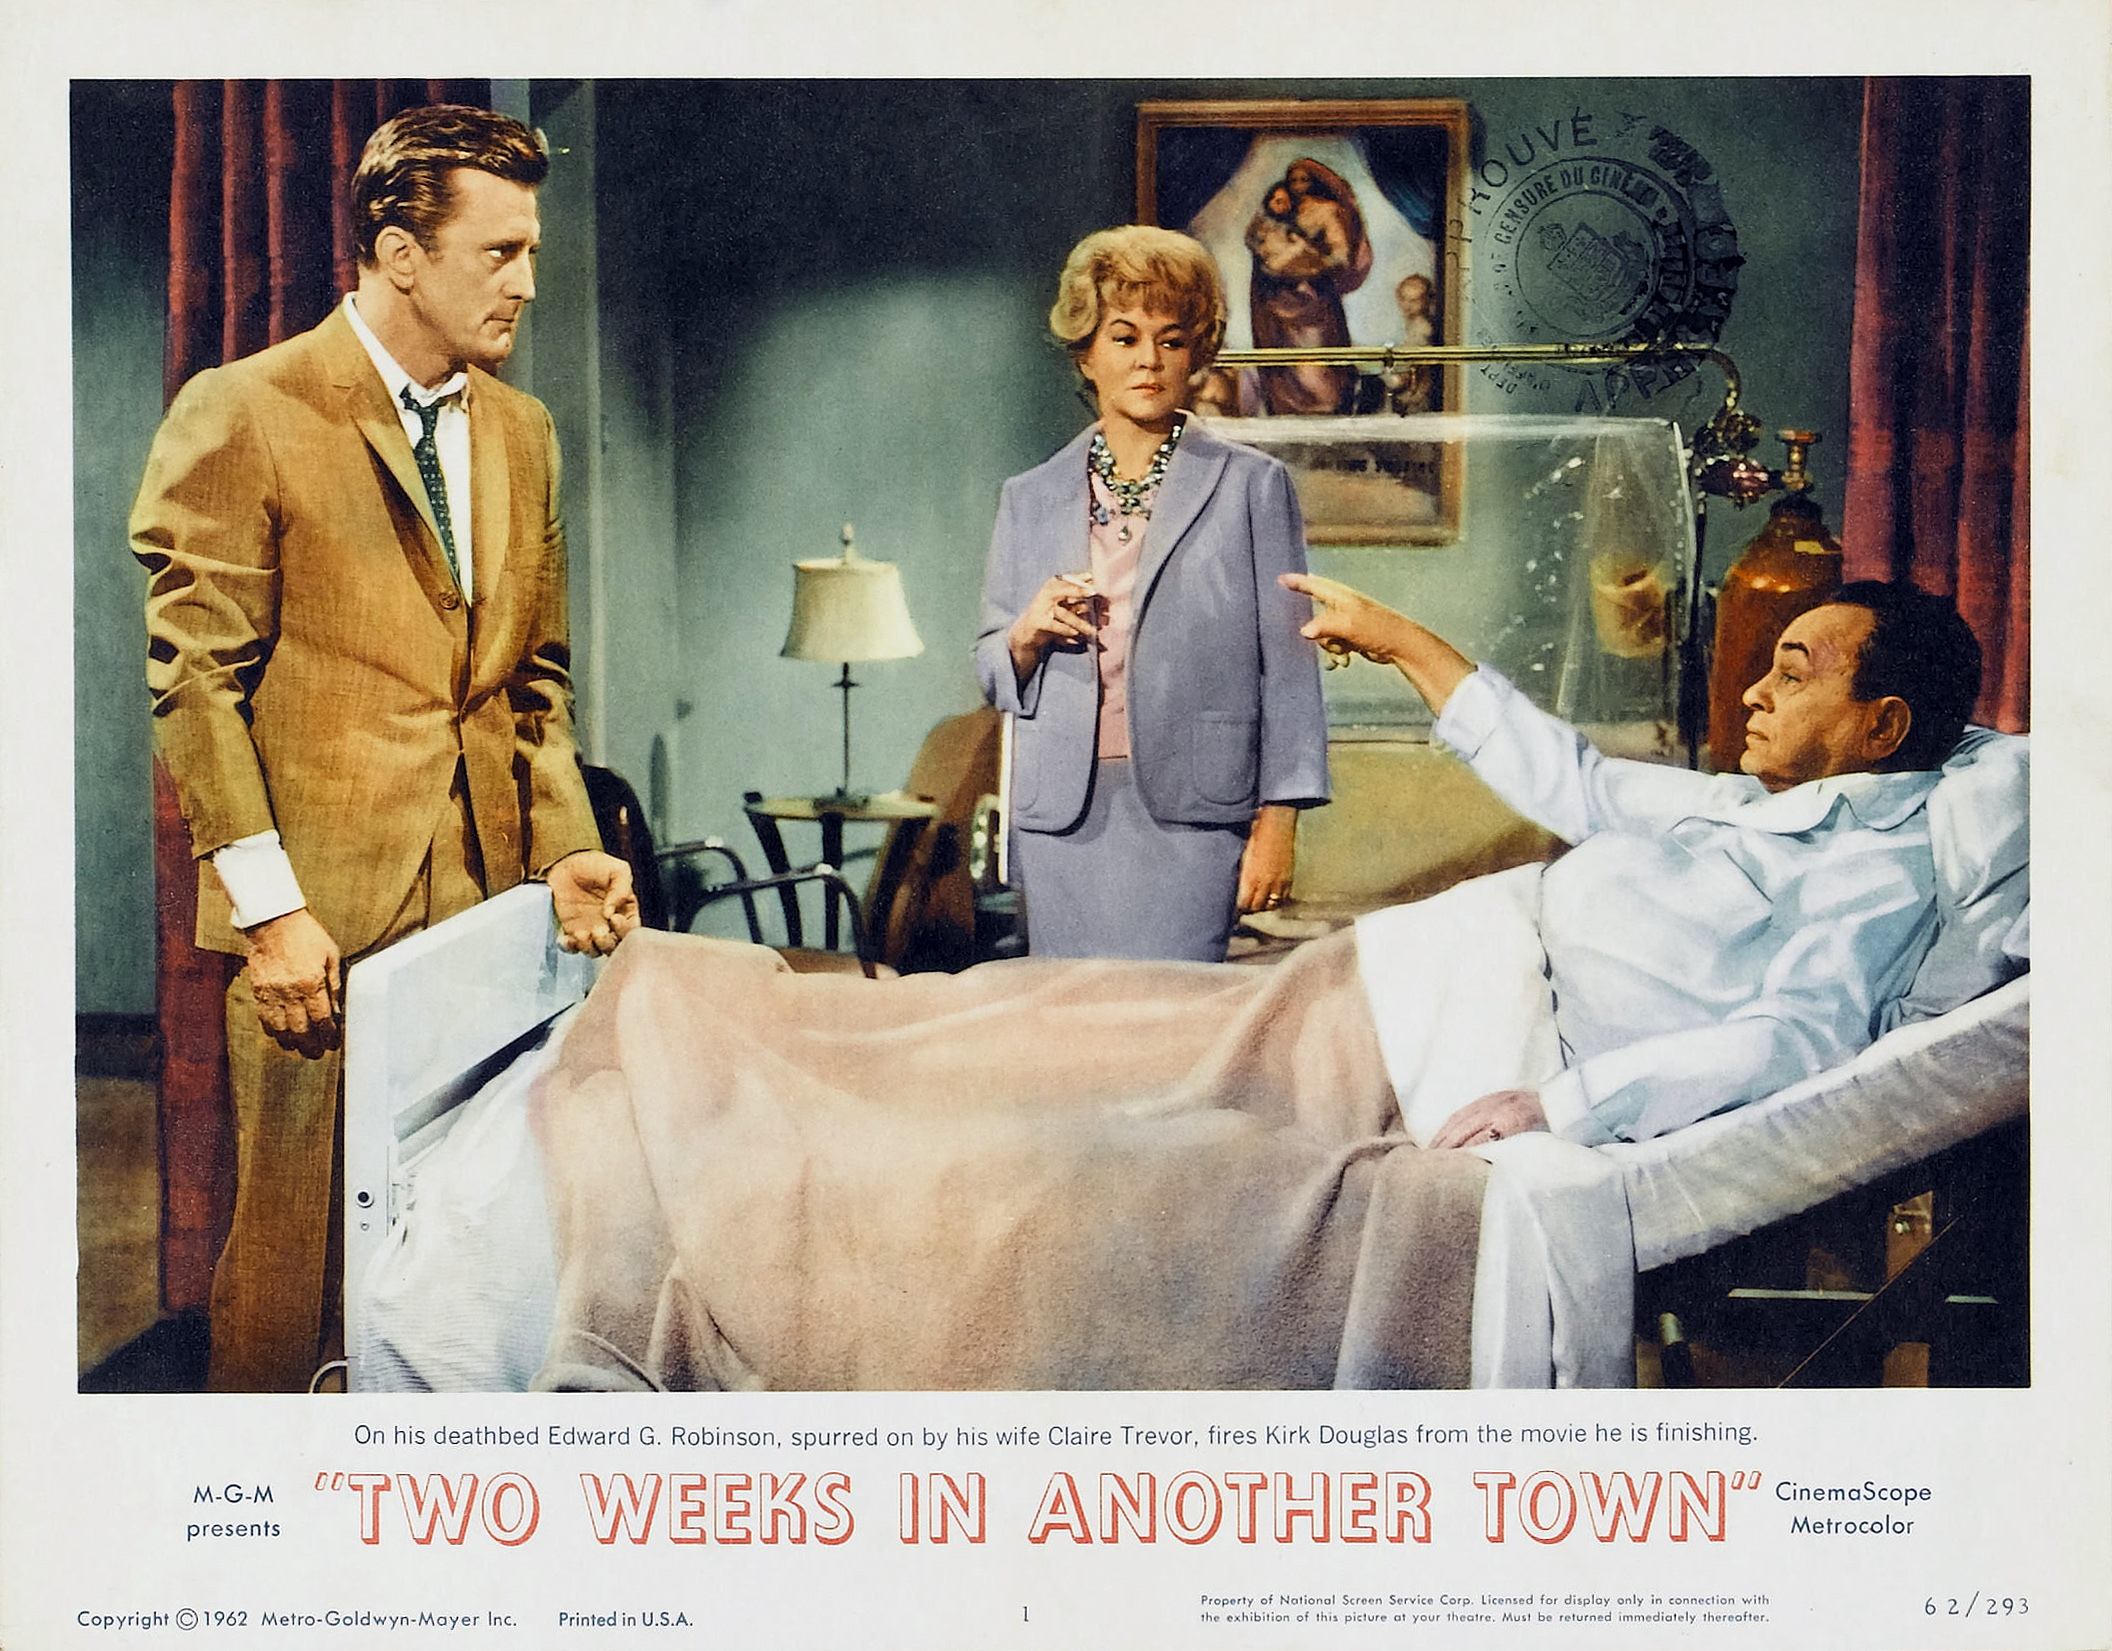 Kirk Douglas, Edward G. Robinson, and Claire Trevor in Two Weeks in Another Town (1962)